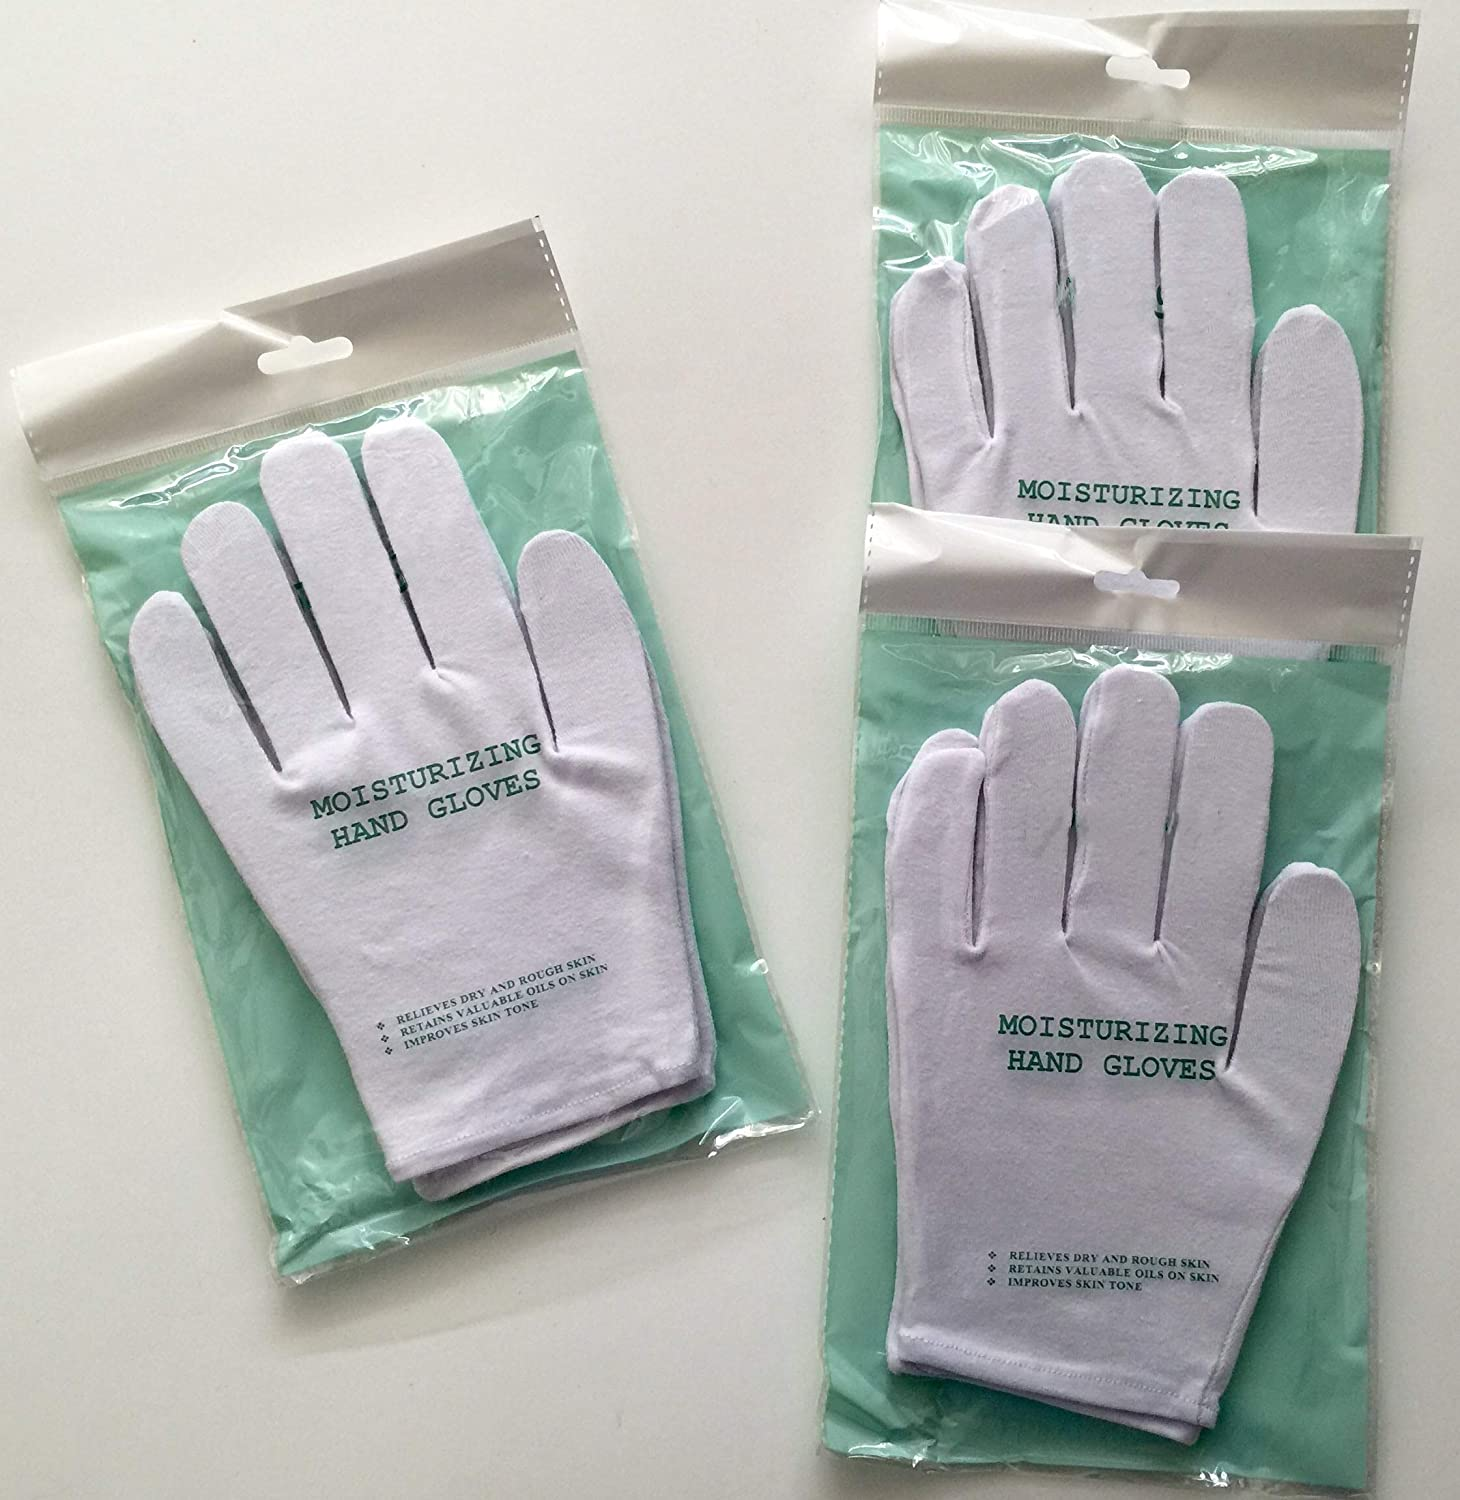 3 pairs/set Moisturizing Hand Gloves, Premium Natural Therapy Gloves For Dry Hands, 94% Cotton / 6% Spandex (Set of 3 Pairs)